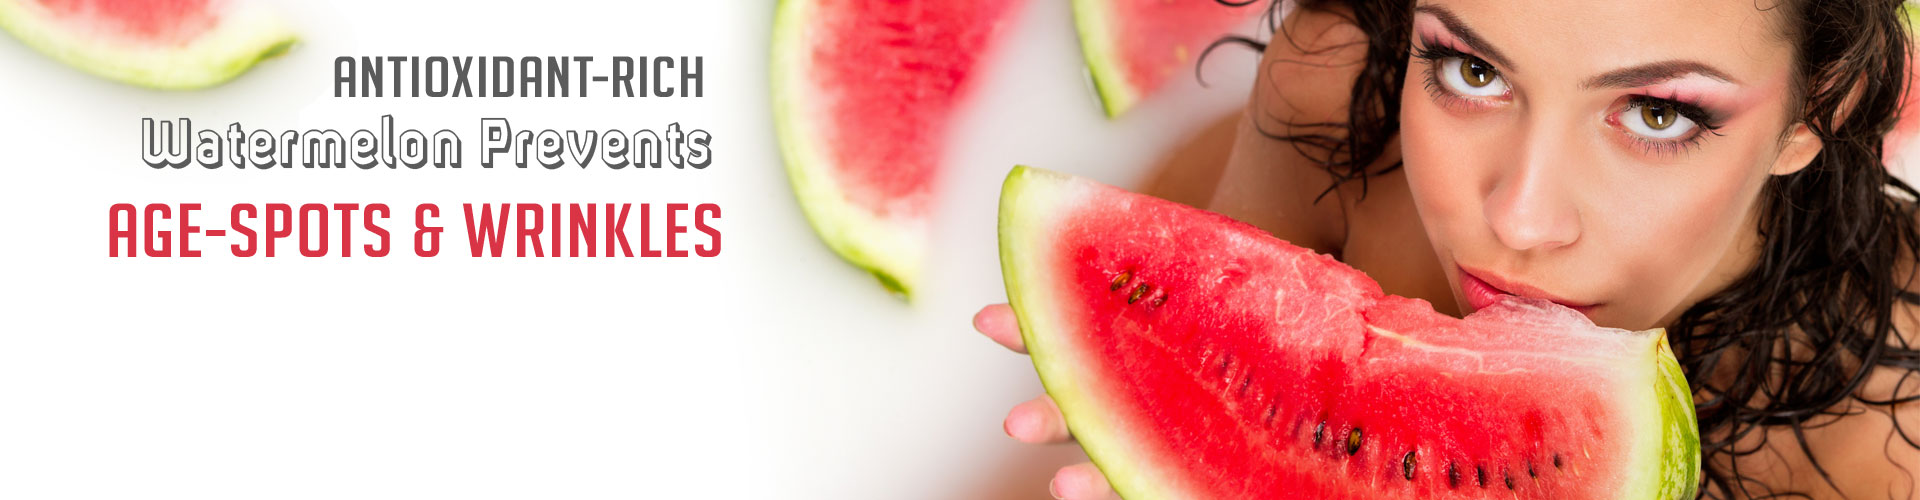 Top 7 Health Benefits of Watermelon